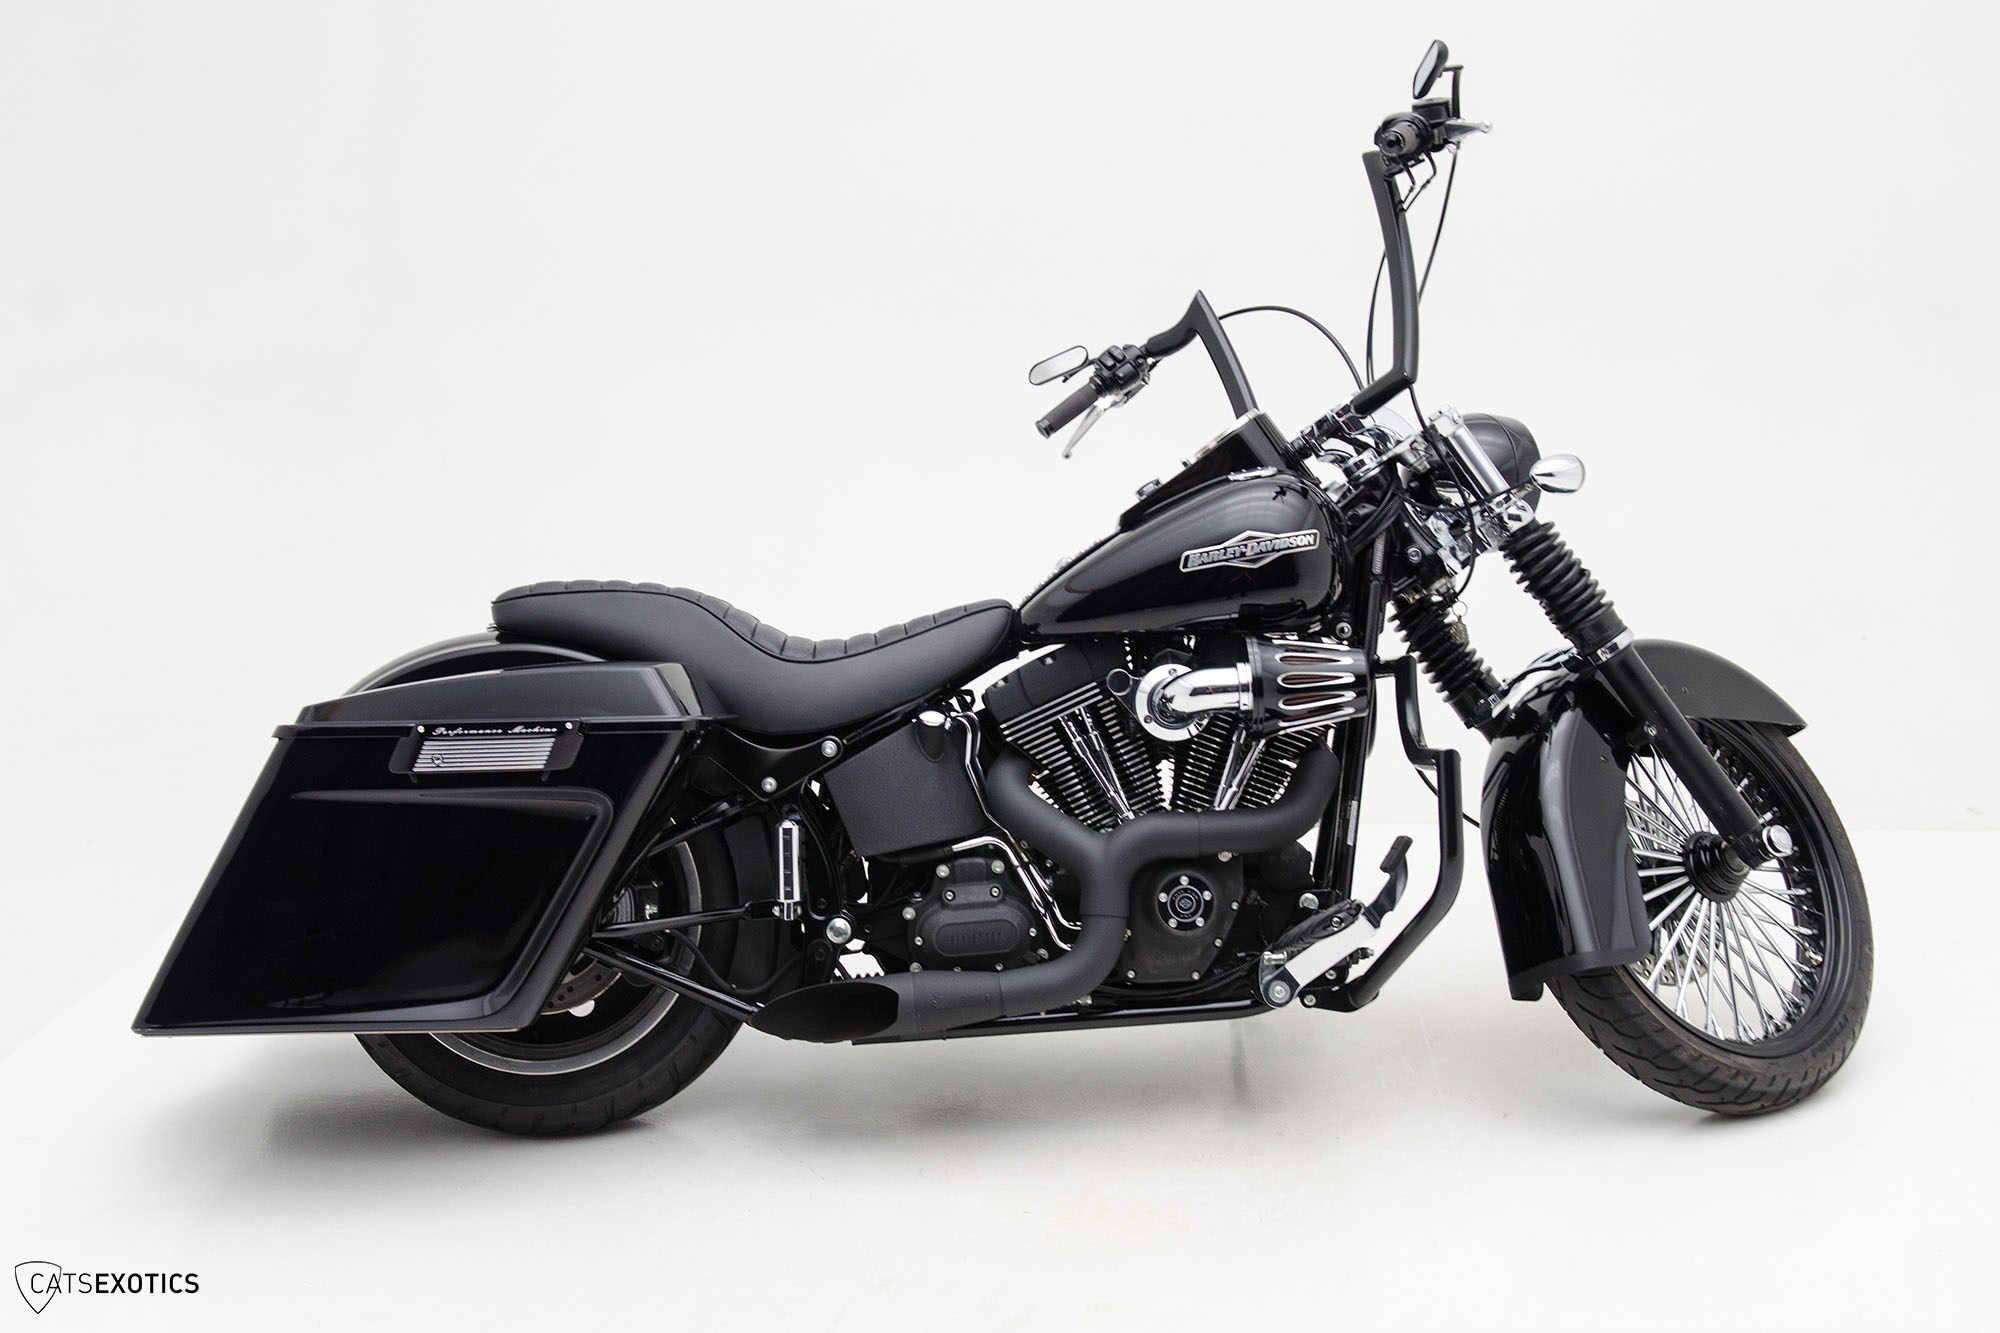 Harley Davidson Dealer Washington >> 2009 Harley-Davidson® FXSTB Softail® Night Train® (Black), Lynnwood, Washington (651495 ...